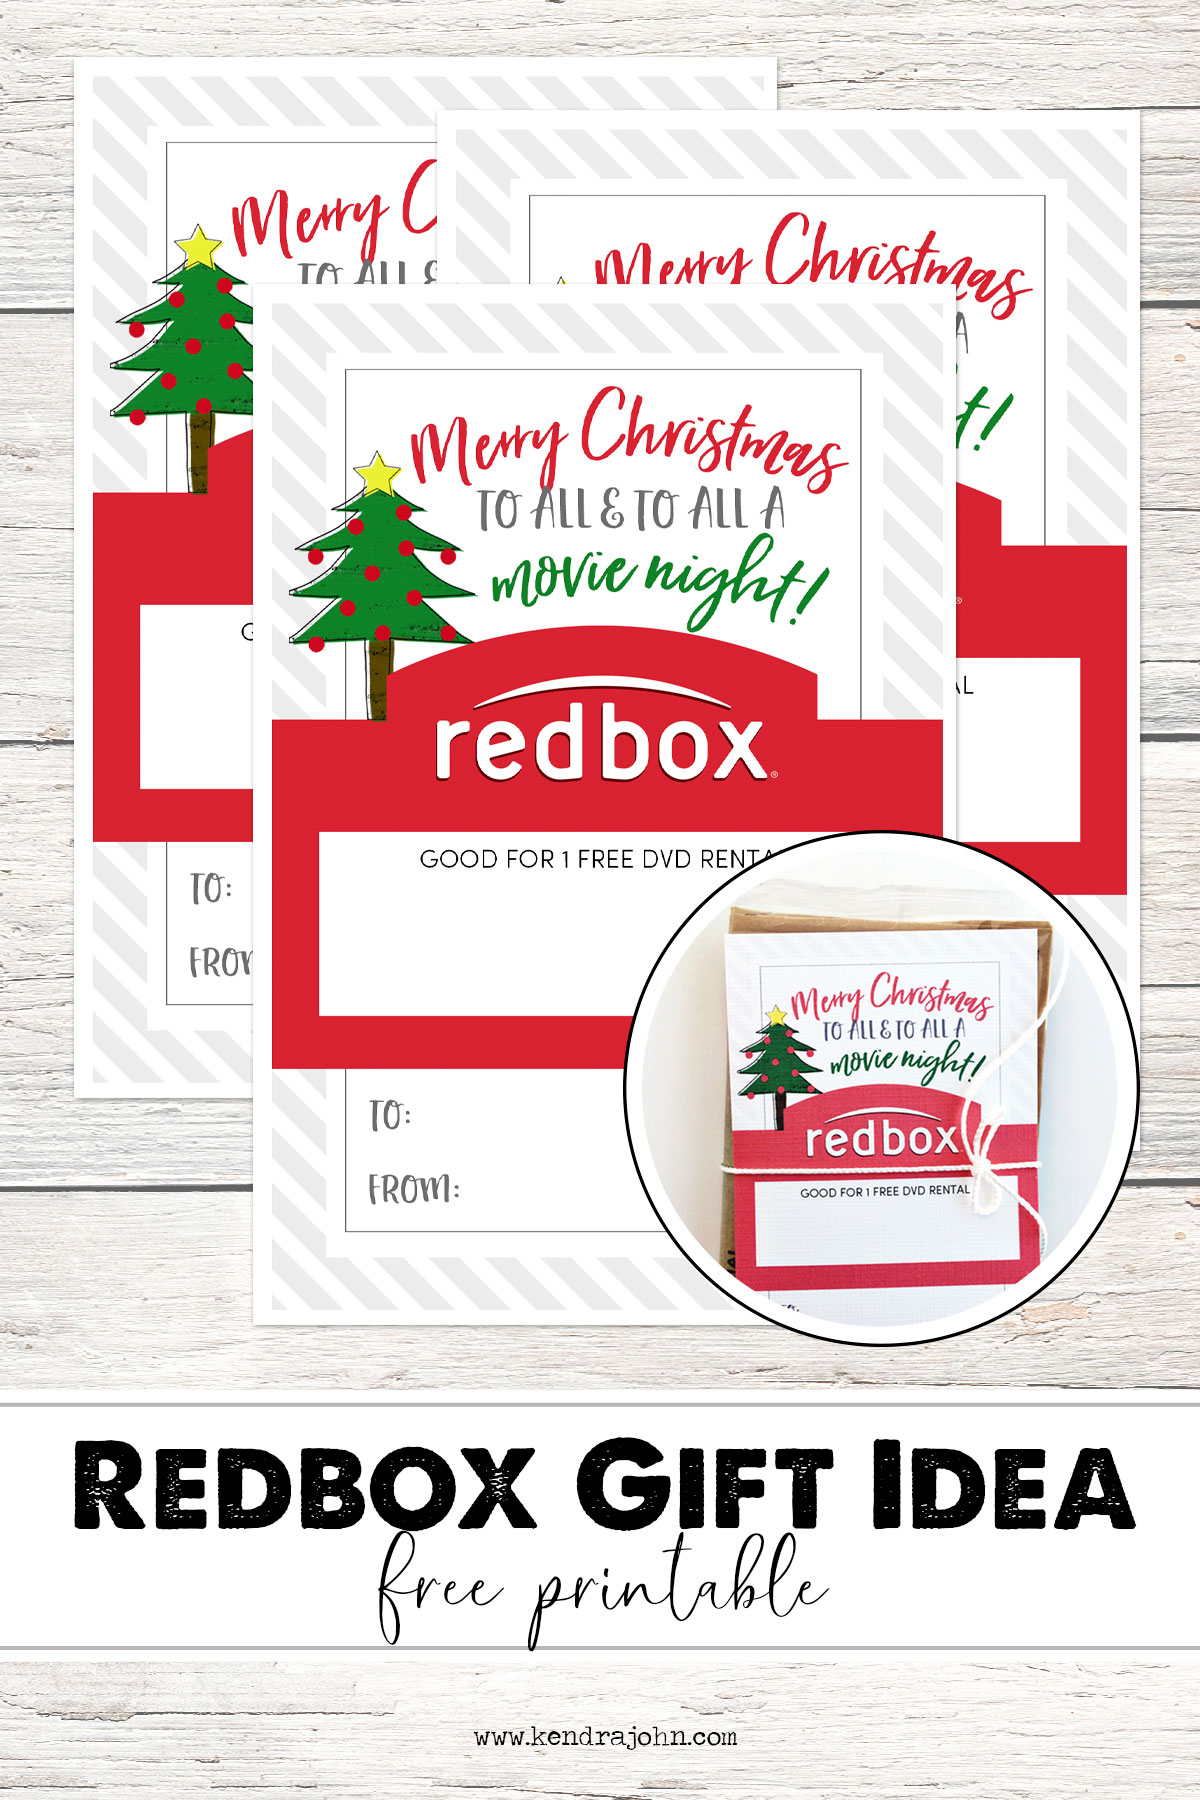 picture relating to Printable Redbox Gift Cards referred to as Redbox Xmas Reward Thought - Main Lime Electronic Layouts